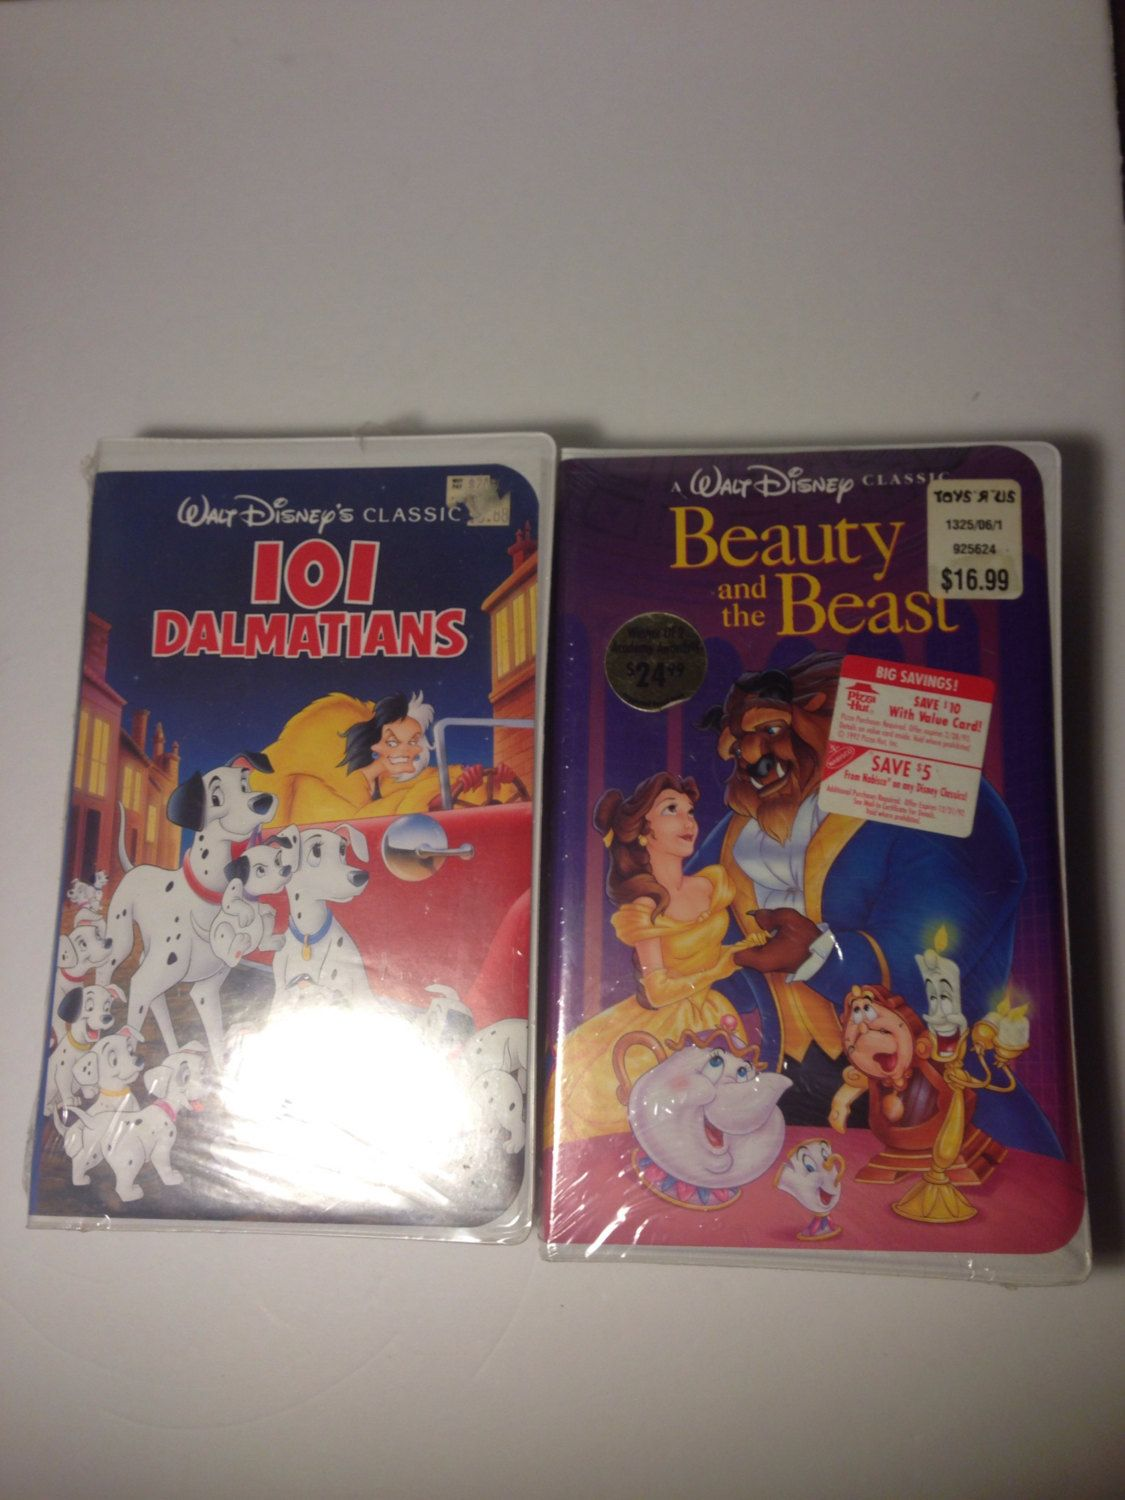 New Still Sealed In Package Rare Disney Black Diamond Classics Vhs Tapes Beauty And The Beast 101 Dalmatians Disney Disney Collectables Rare